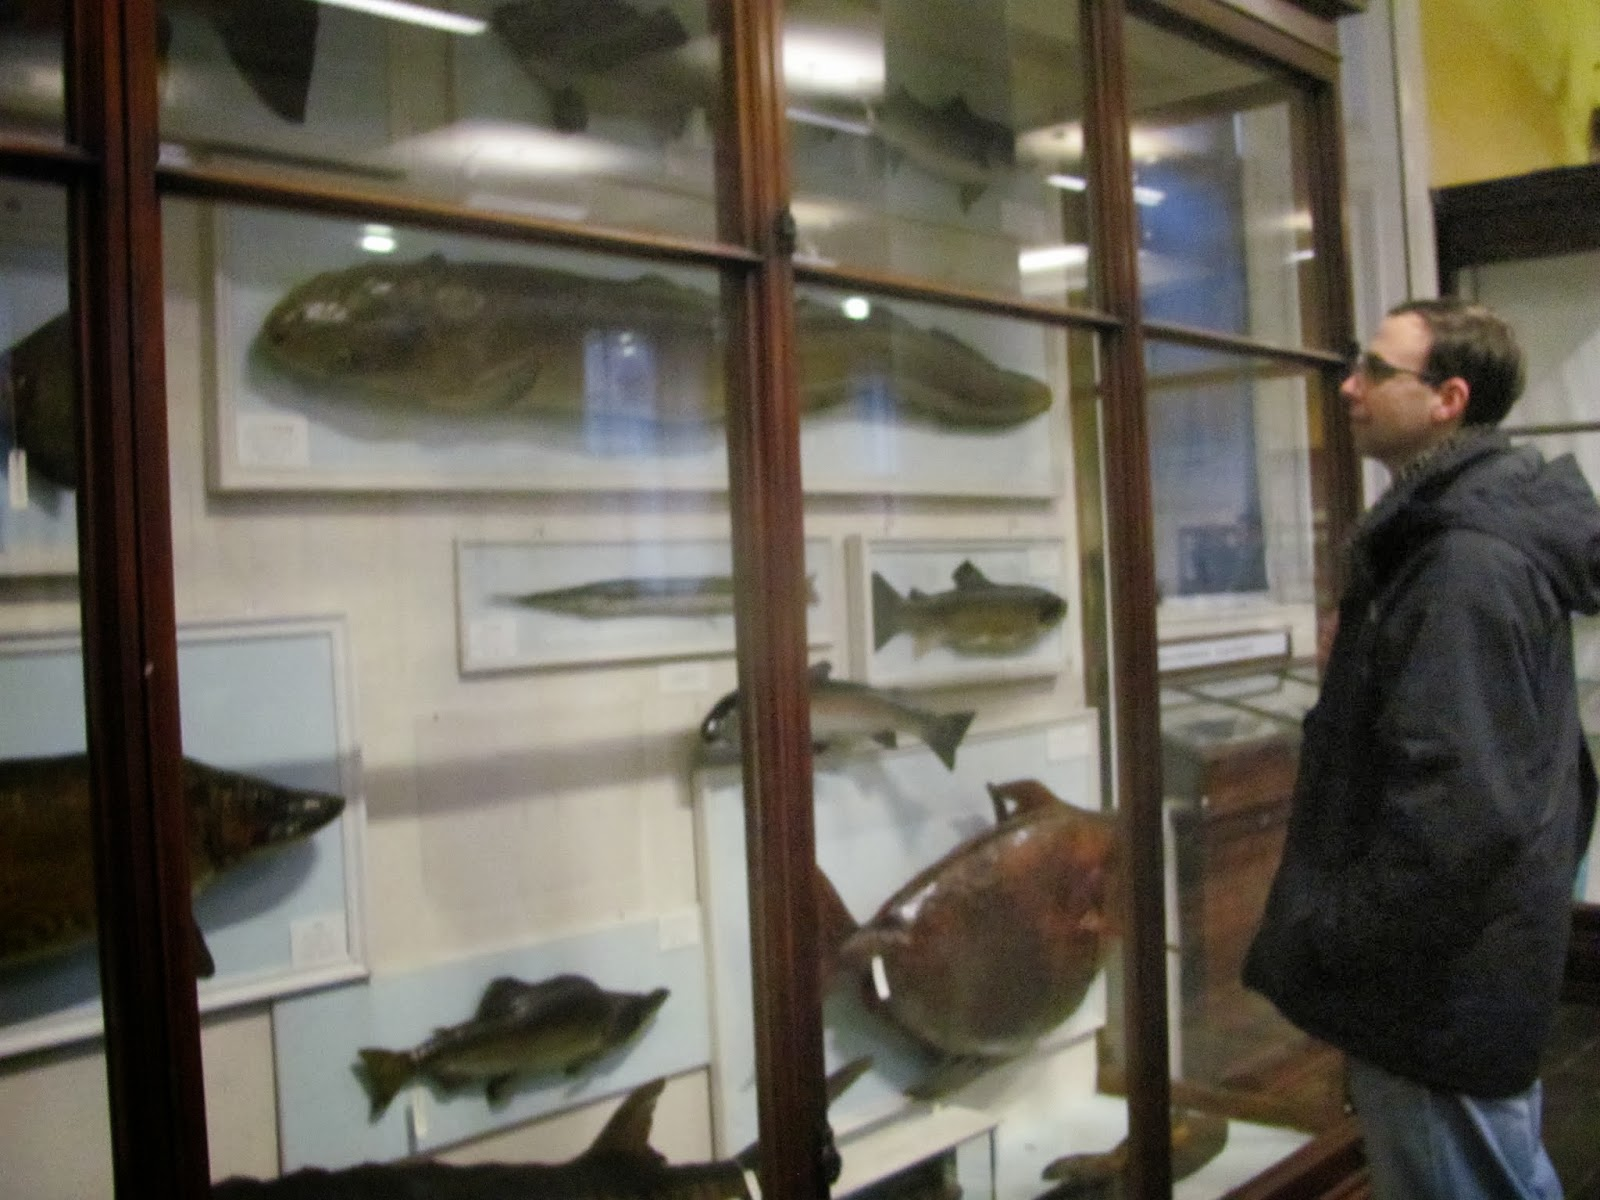 Cory Checkin' out the Fish at the Natural History Museum in Dublin, Ireland